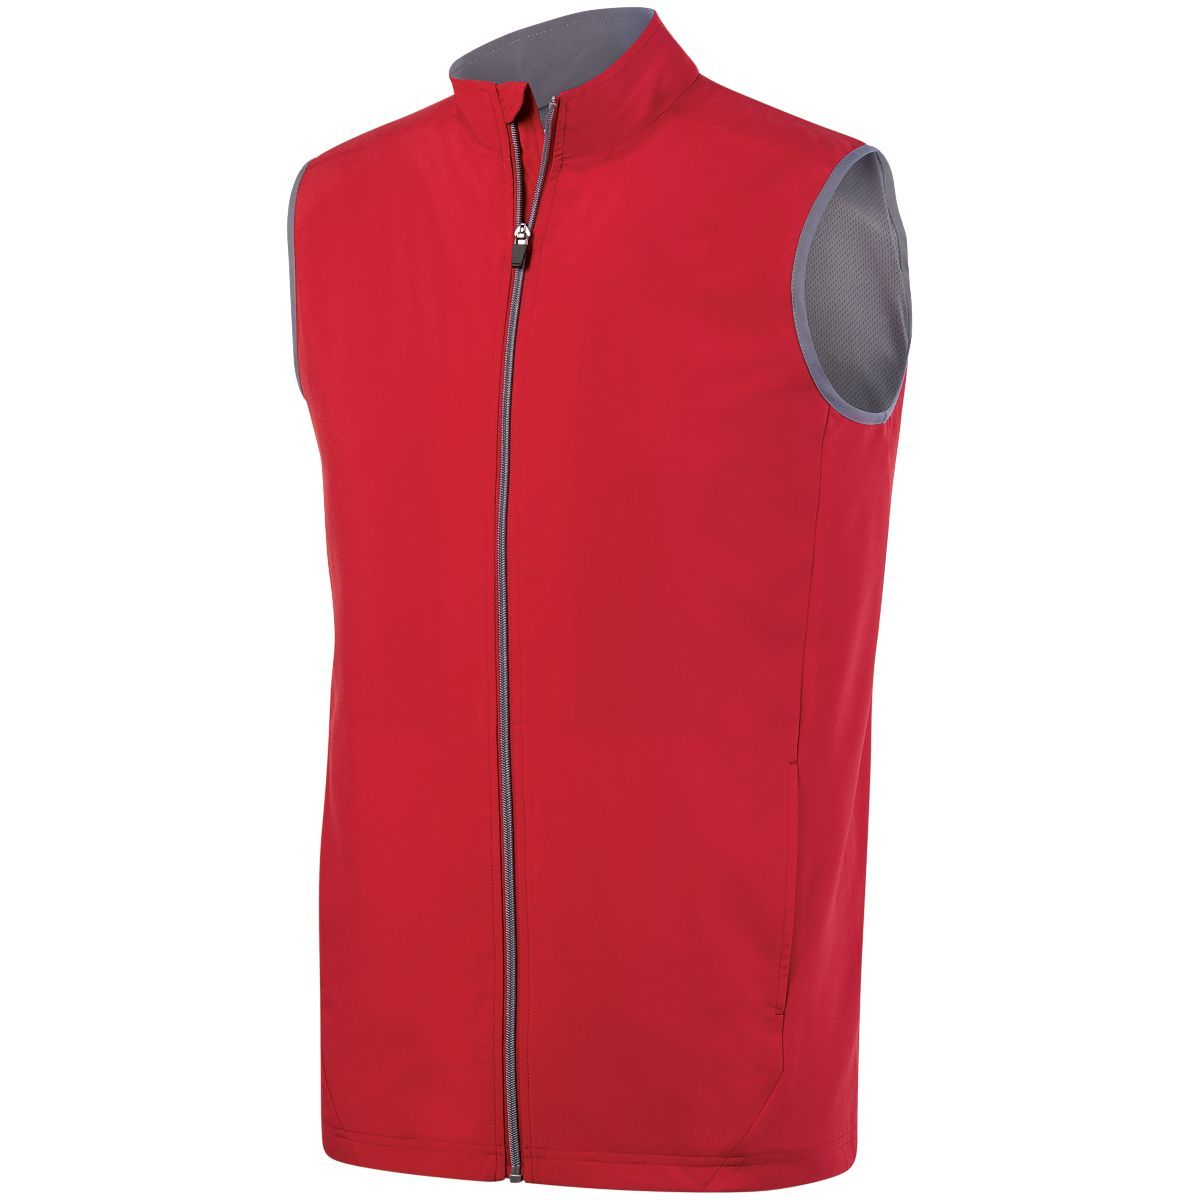 Preeminent Vest - RED/GRAPHITE